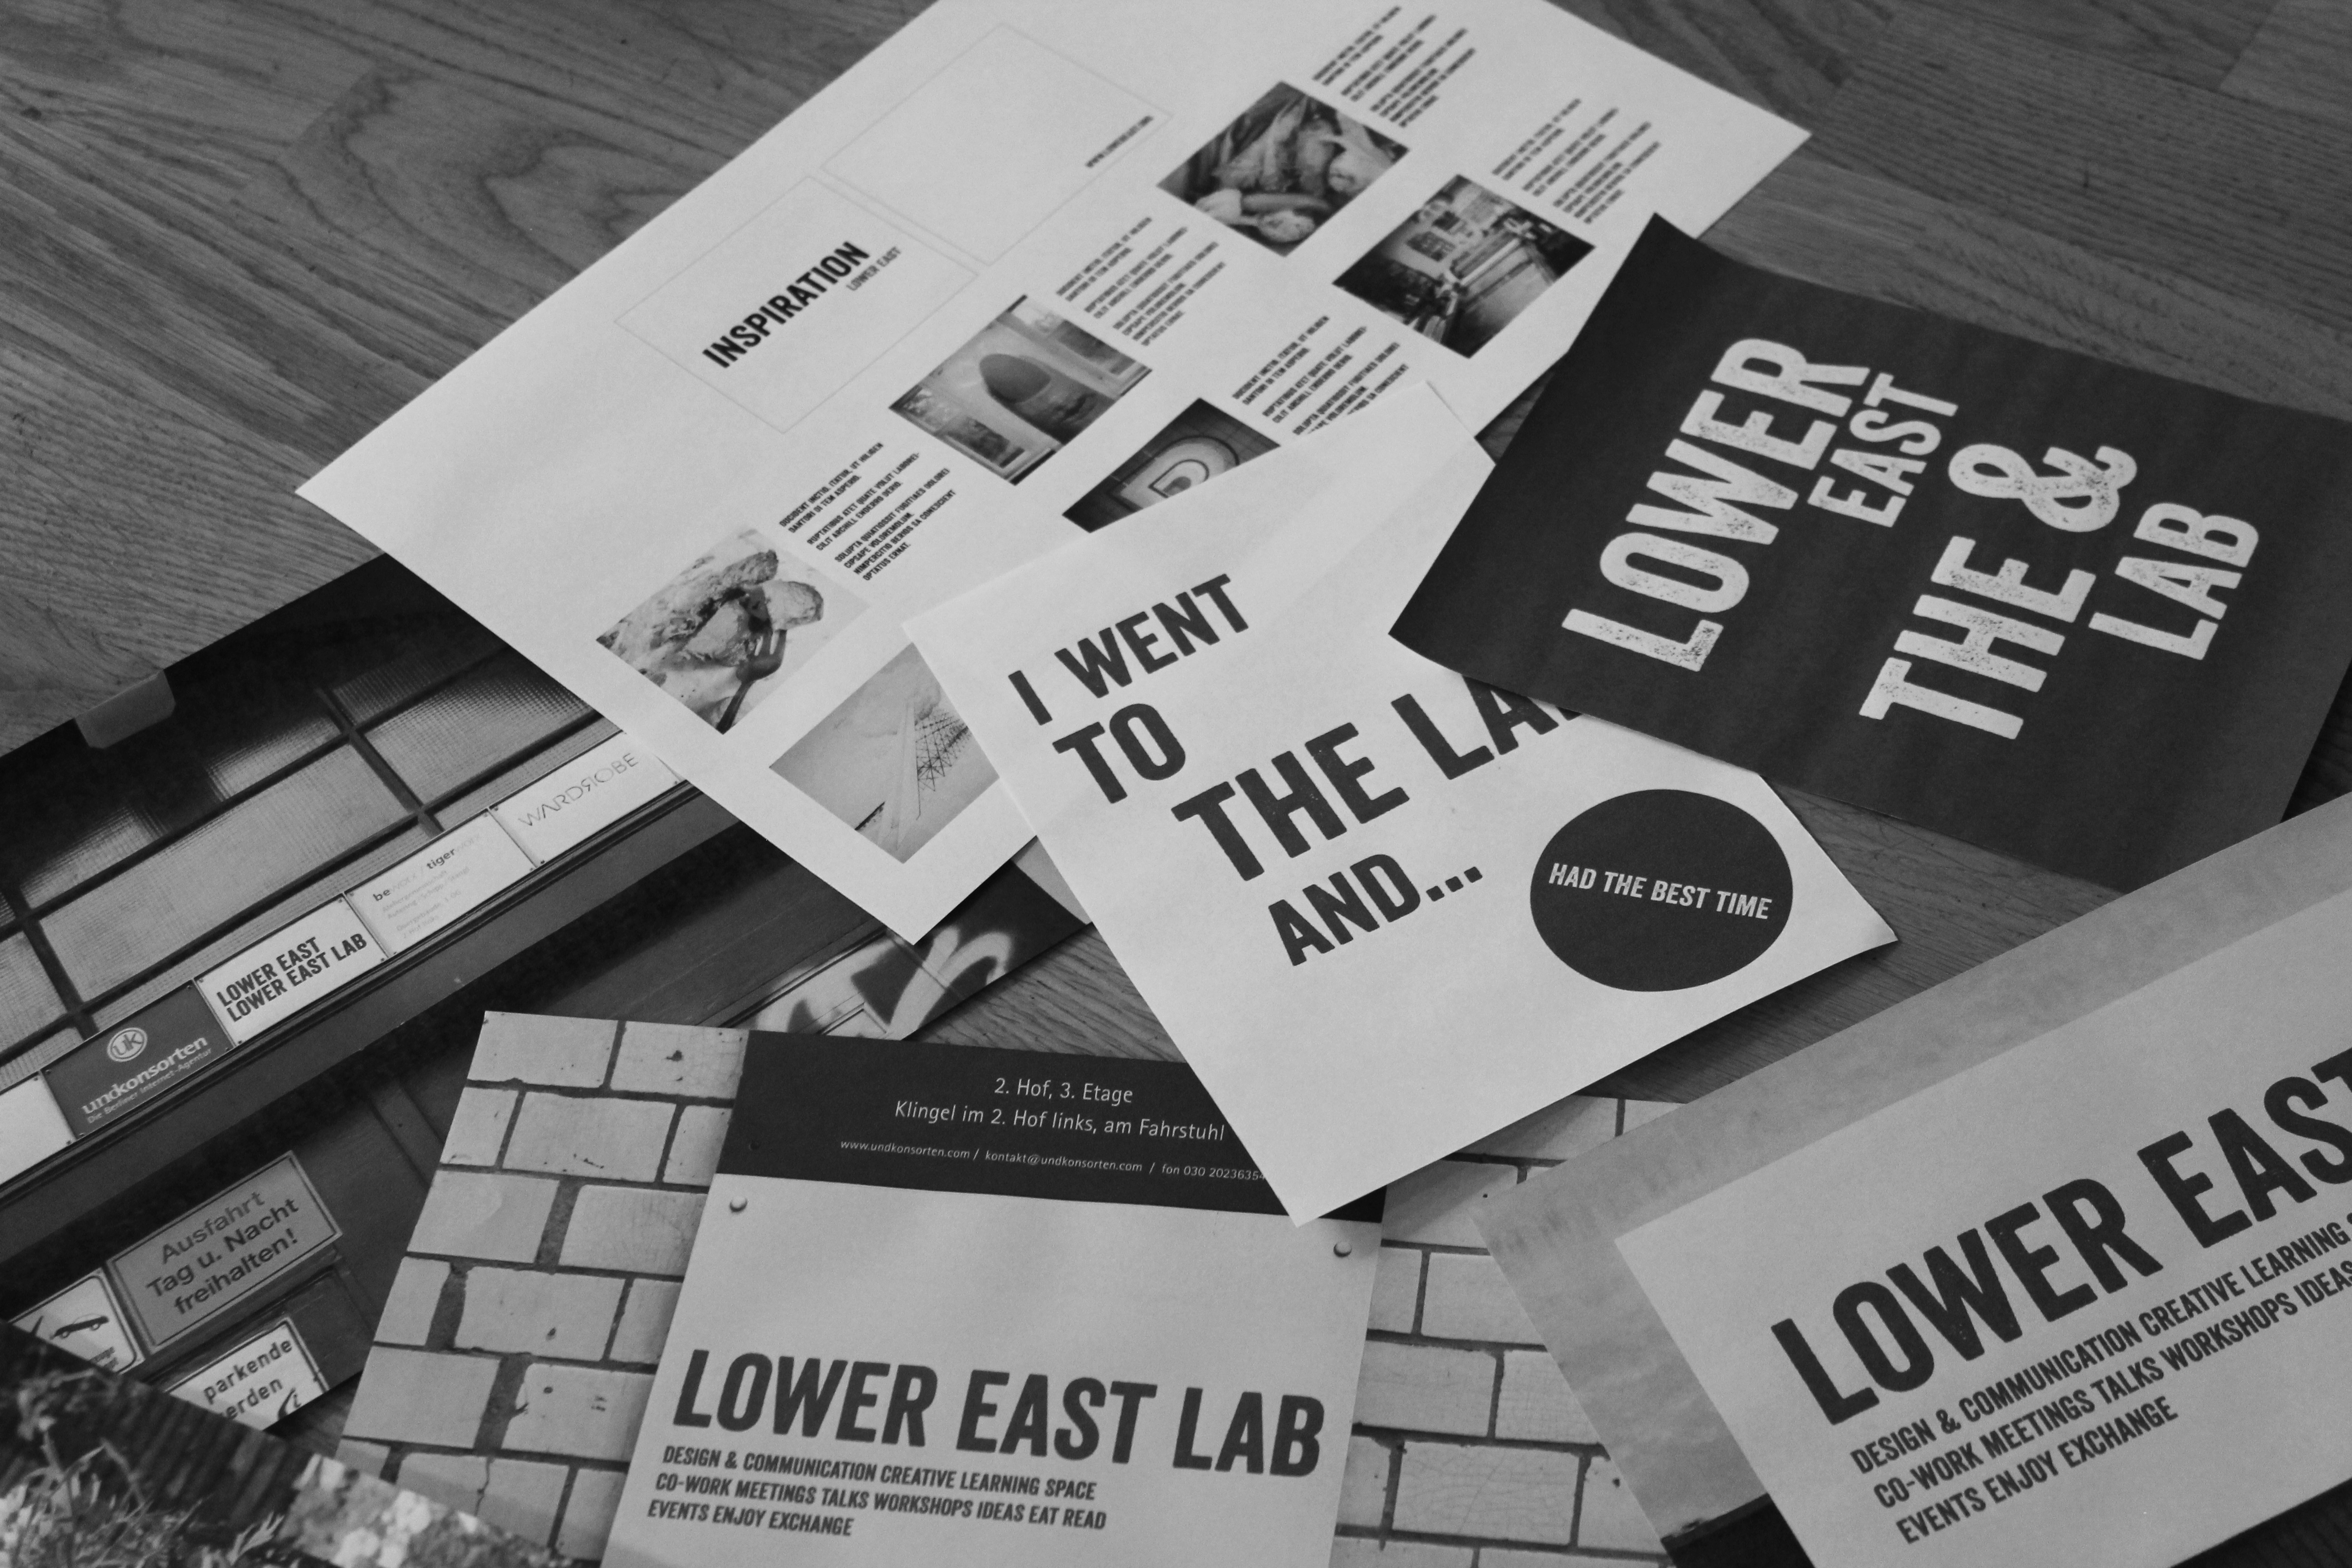 Mockups of the products – signs, posters, inspiration book, billboard